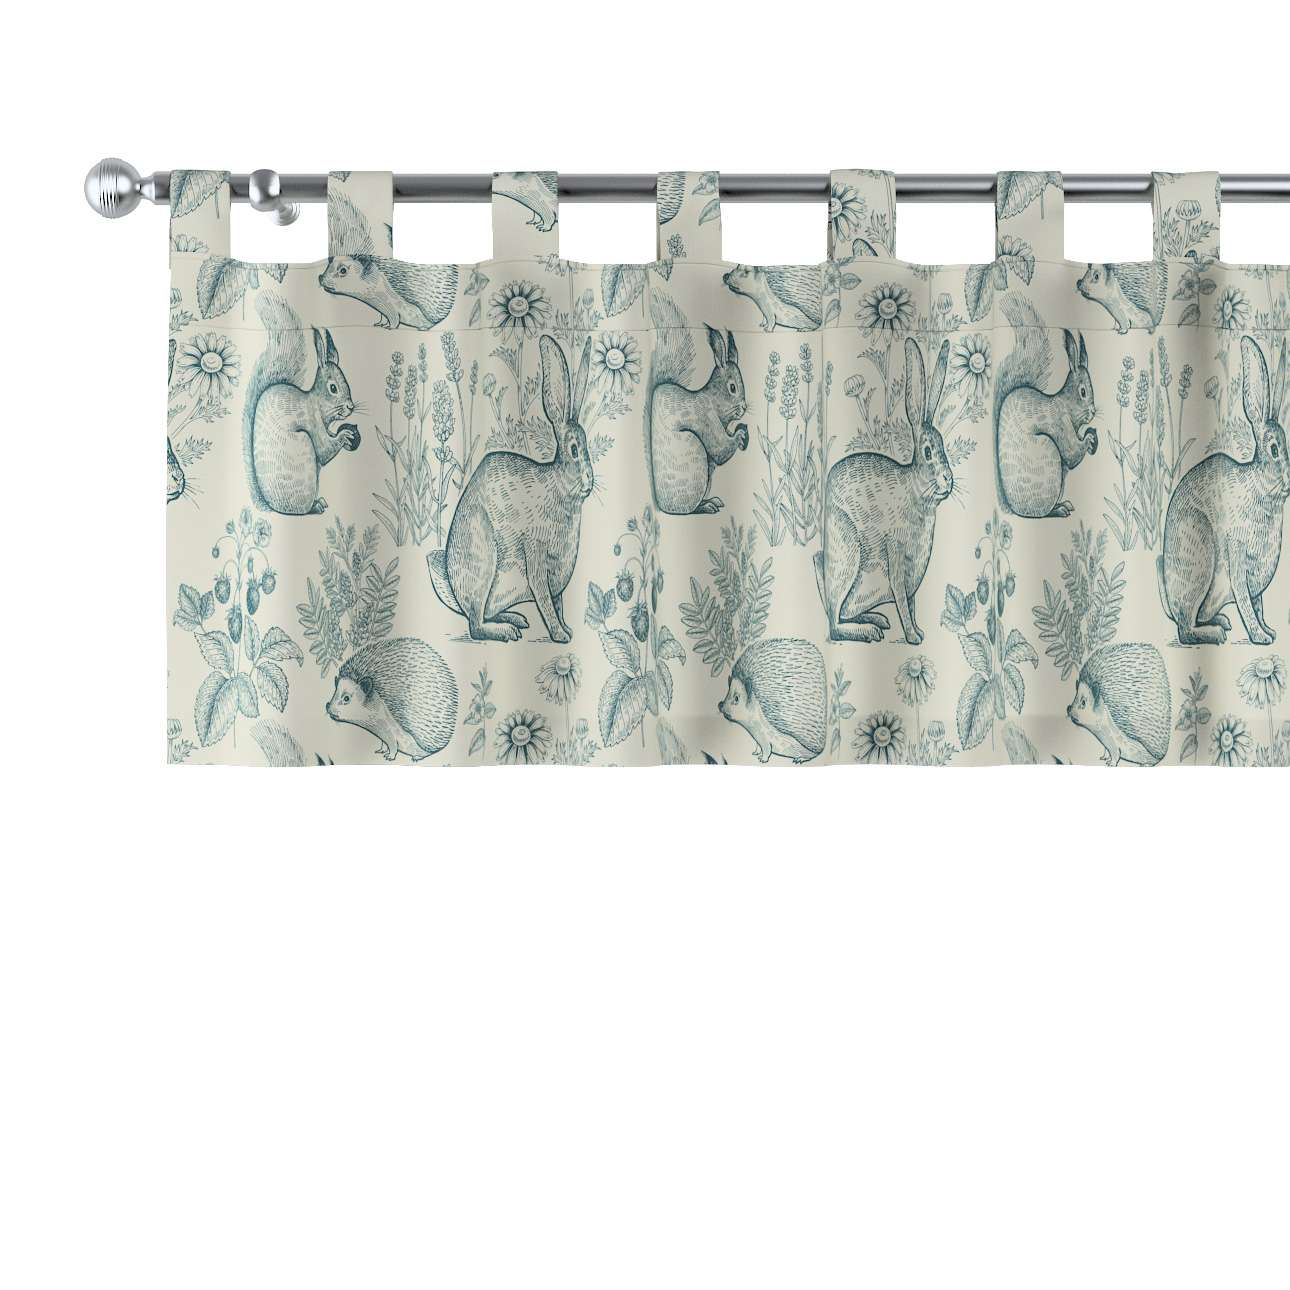 Lambrequin with loops in collection Magic Collection, fabric: 500-04